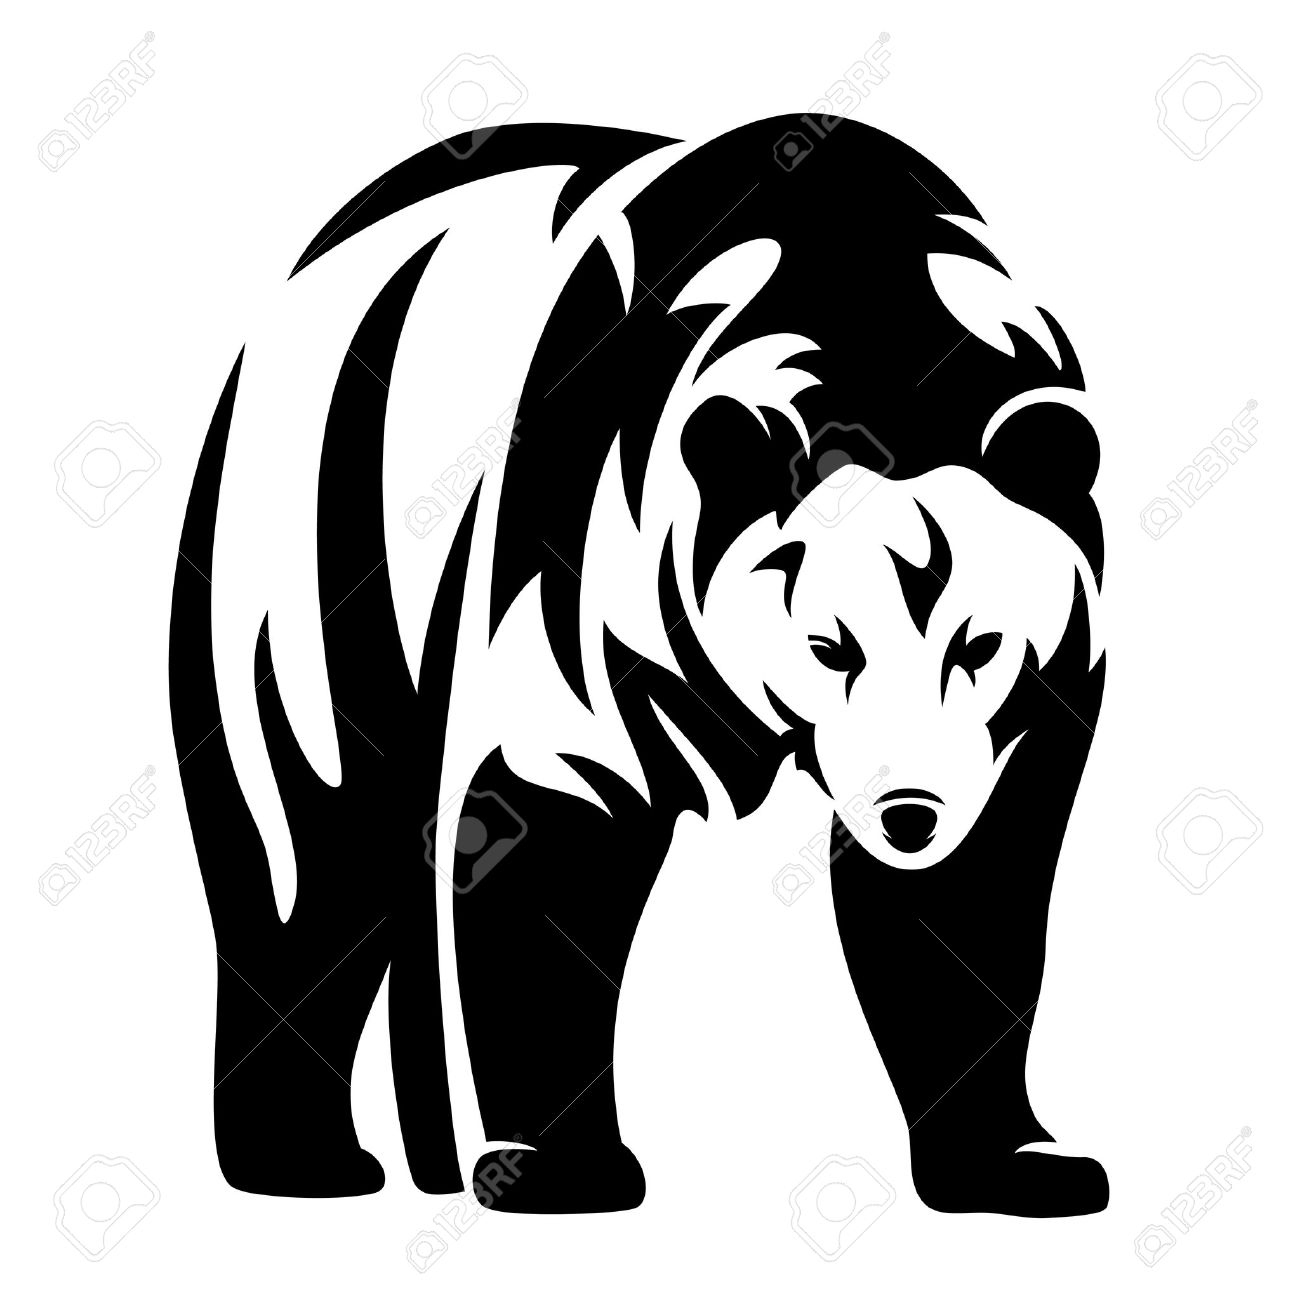 grizzly bear black and white vector design - standing animal monochrome outline - 35581297